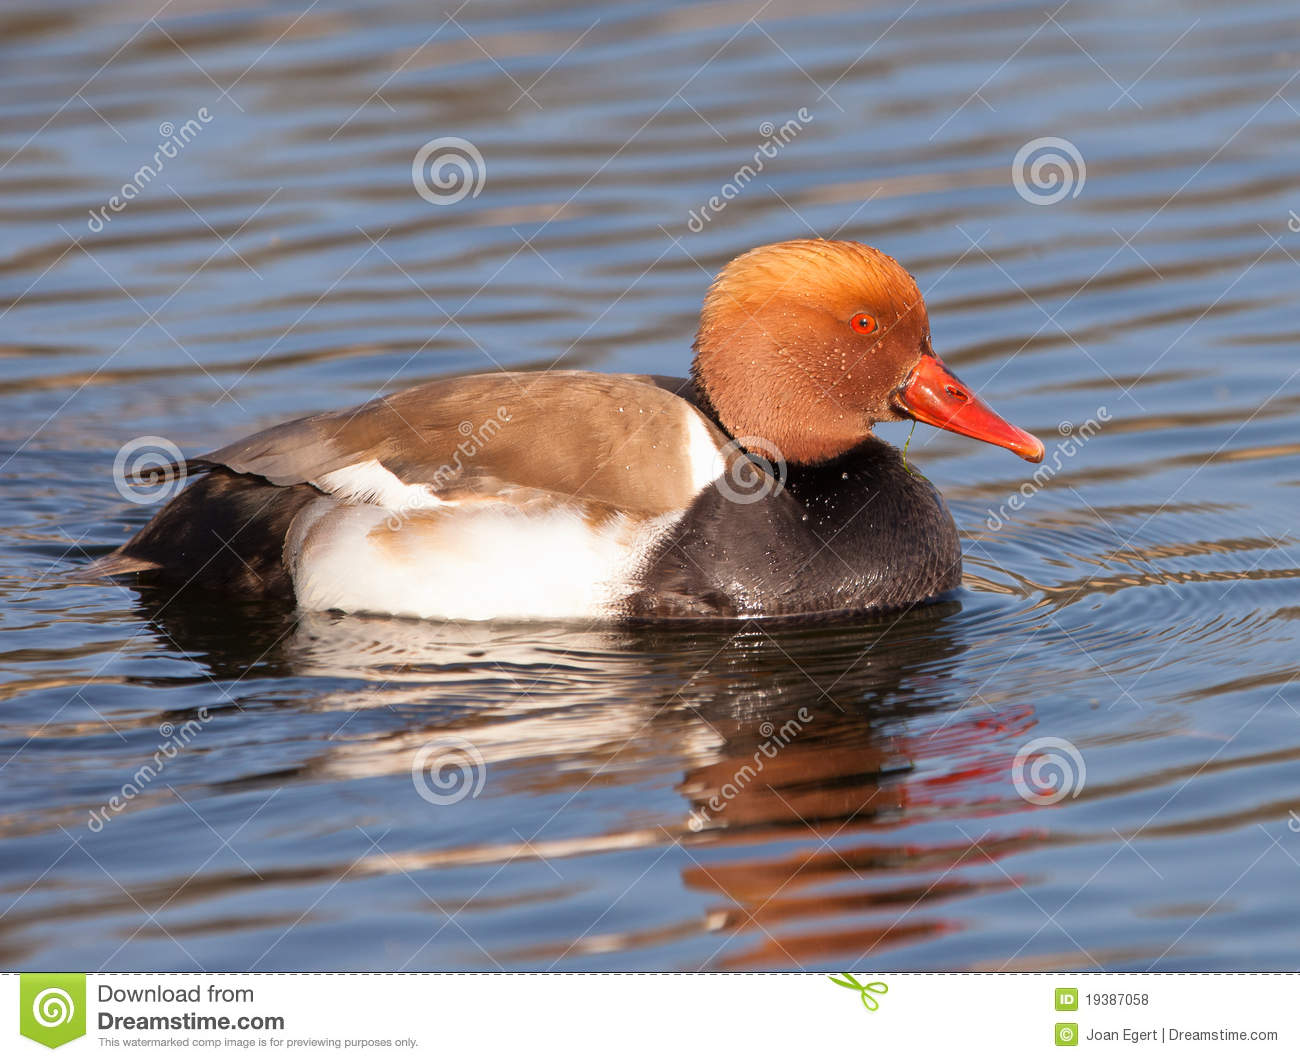 The Red-crested Pochard